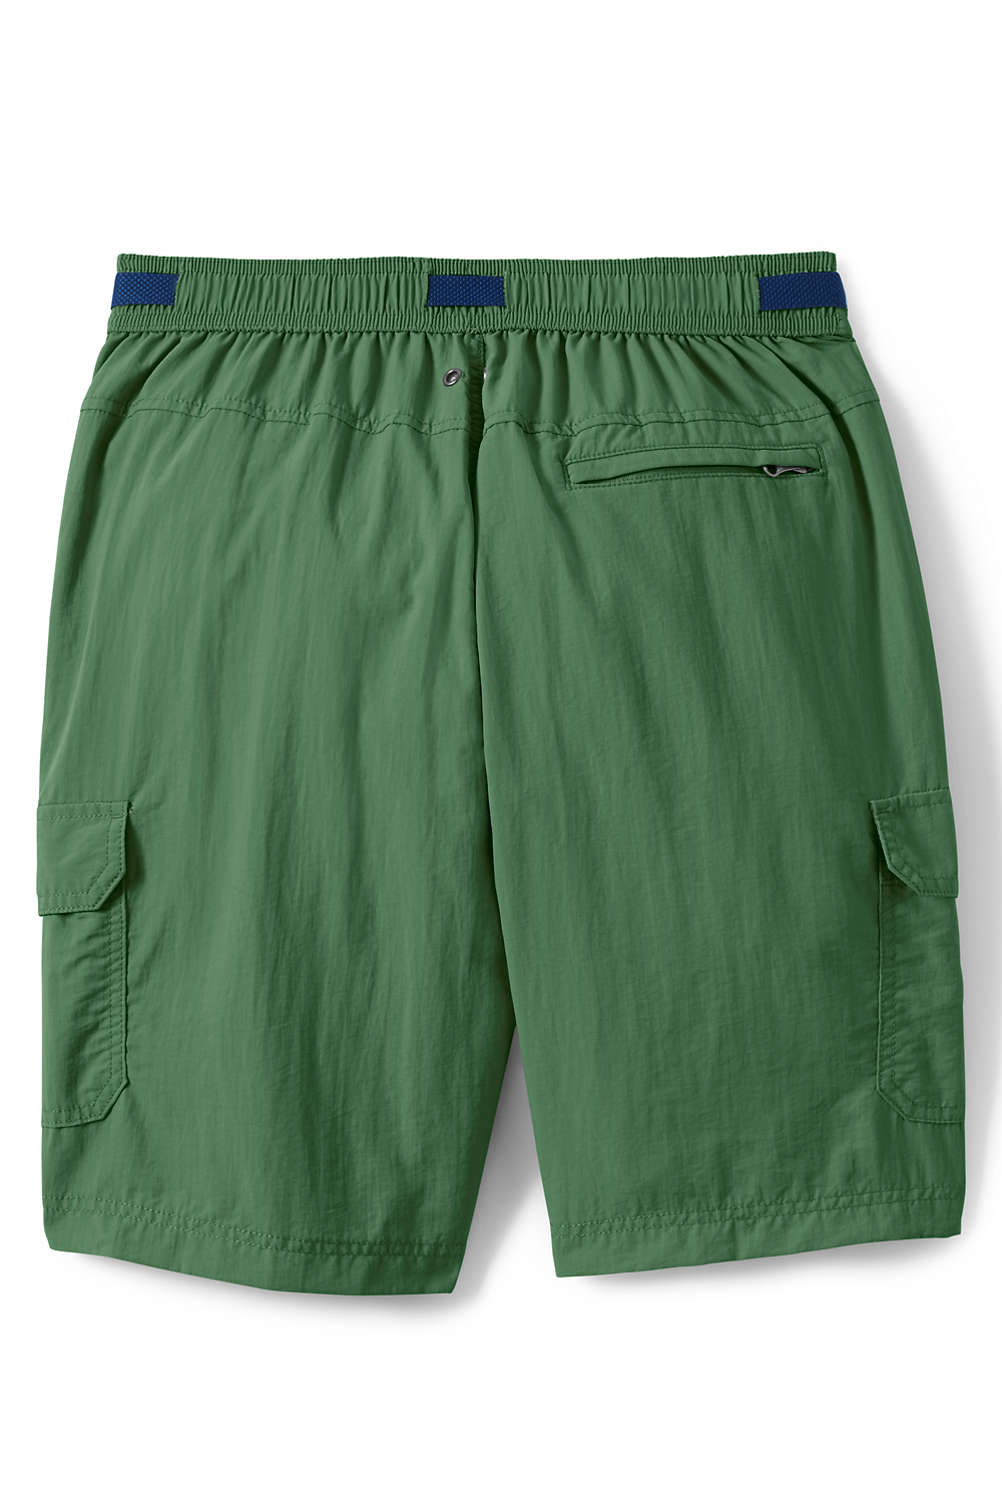 8f54a9f93c How To Dress With Cargo Shorts